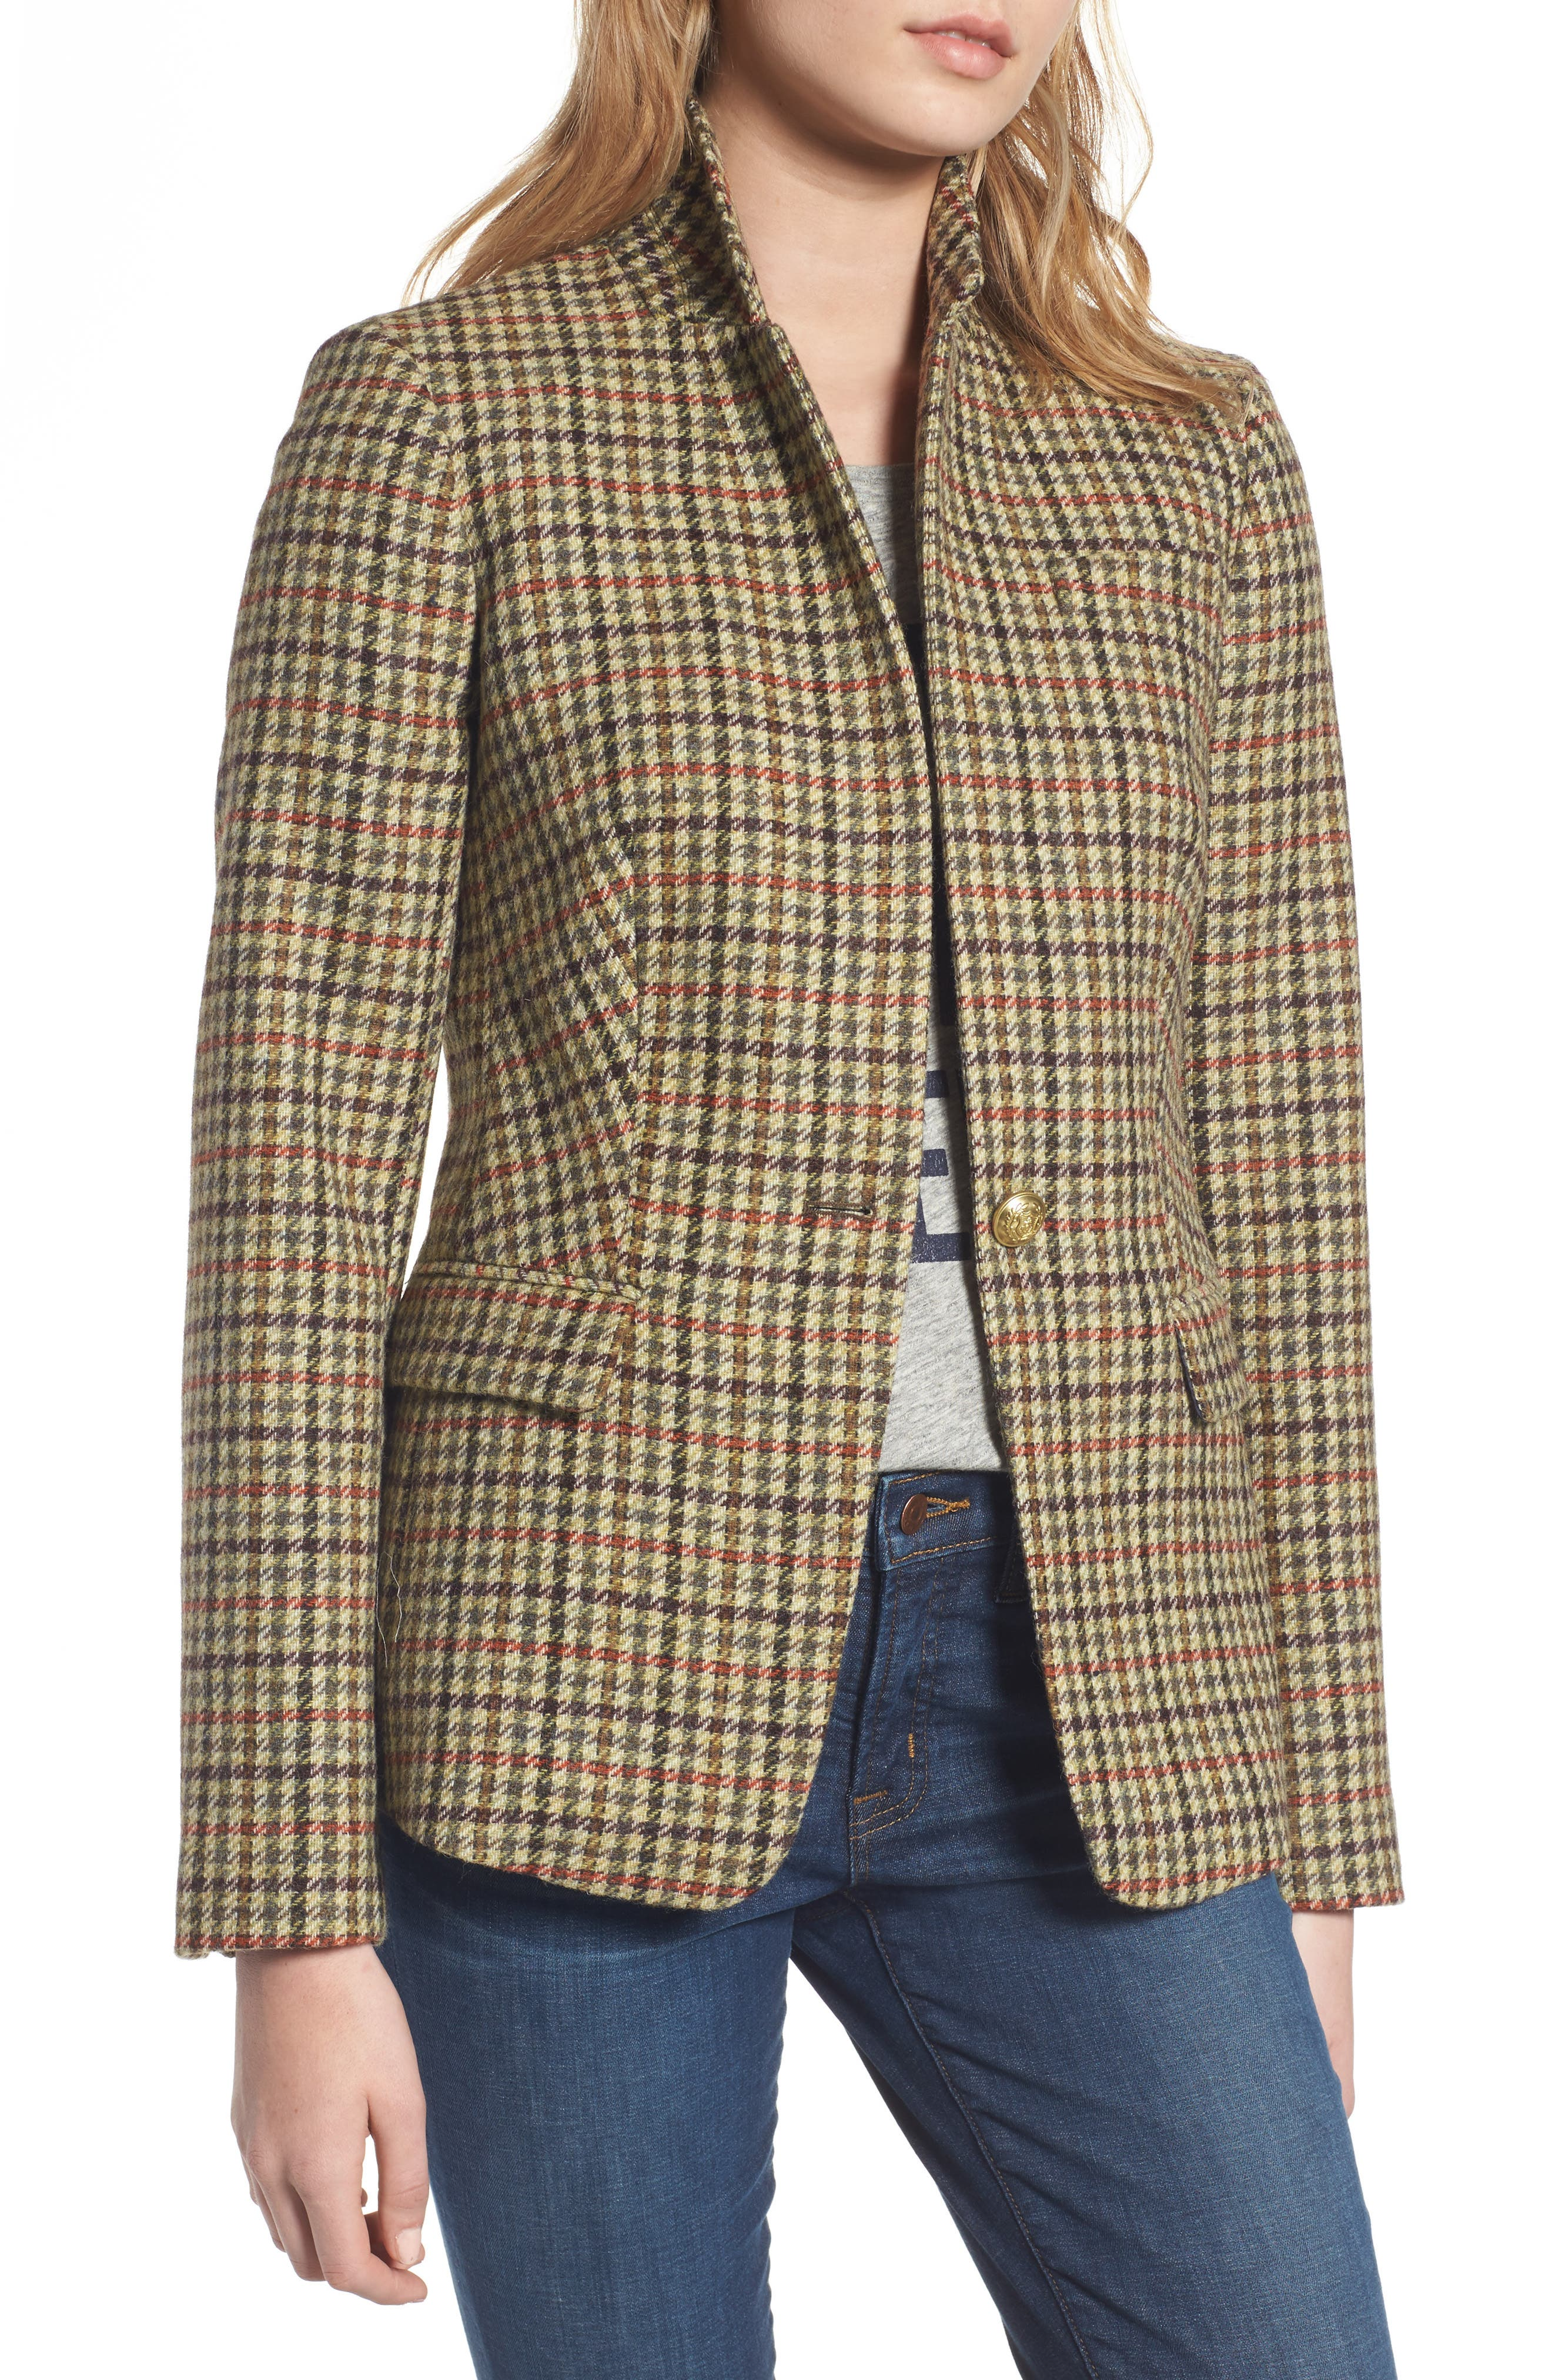 J.Crew Regent Houndstooth Plaid Blazer (Regular & Petite)